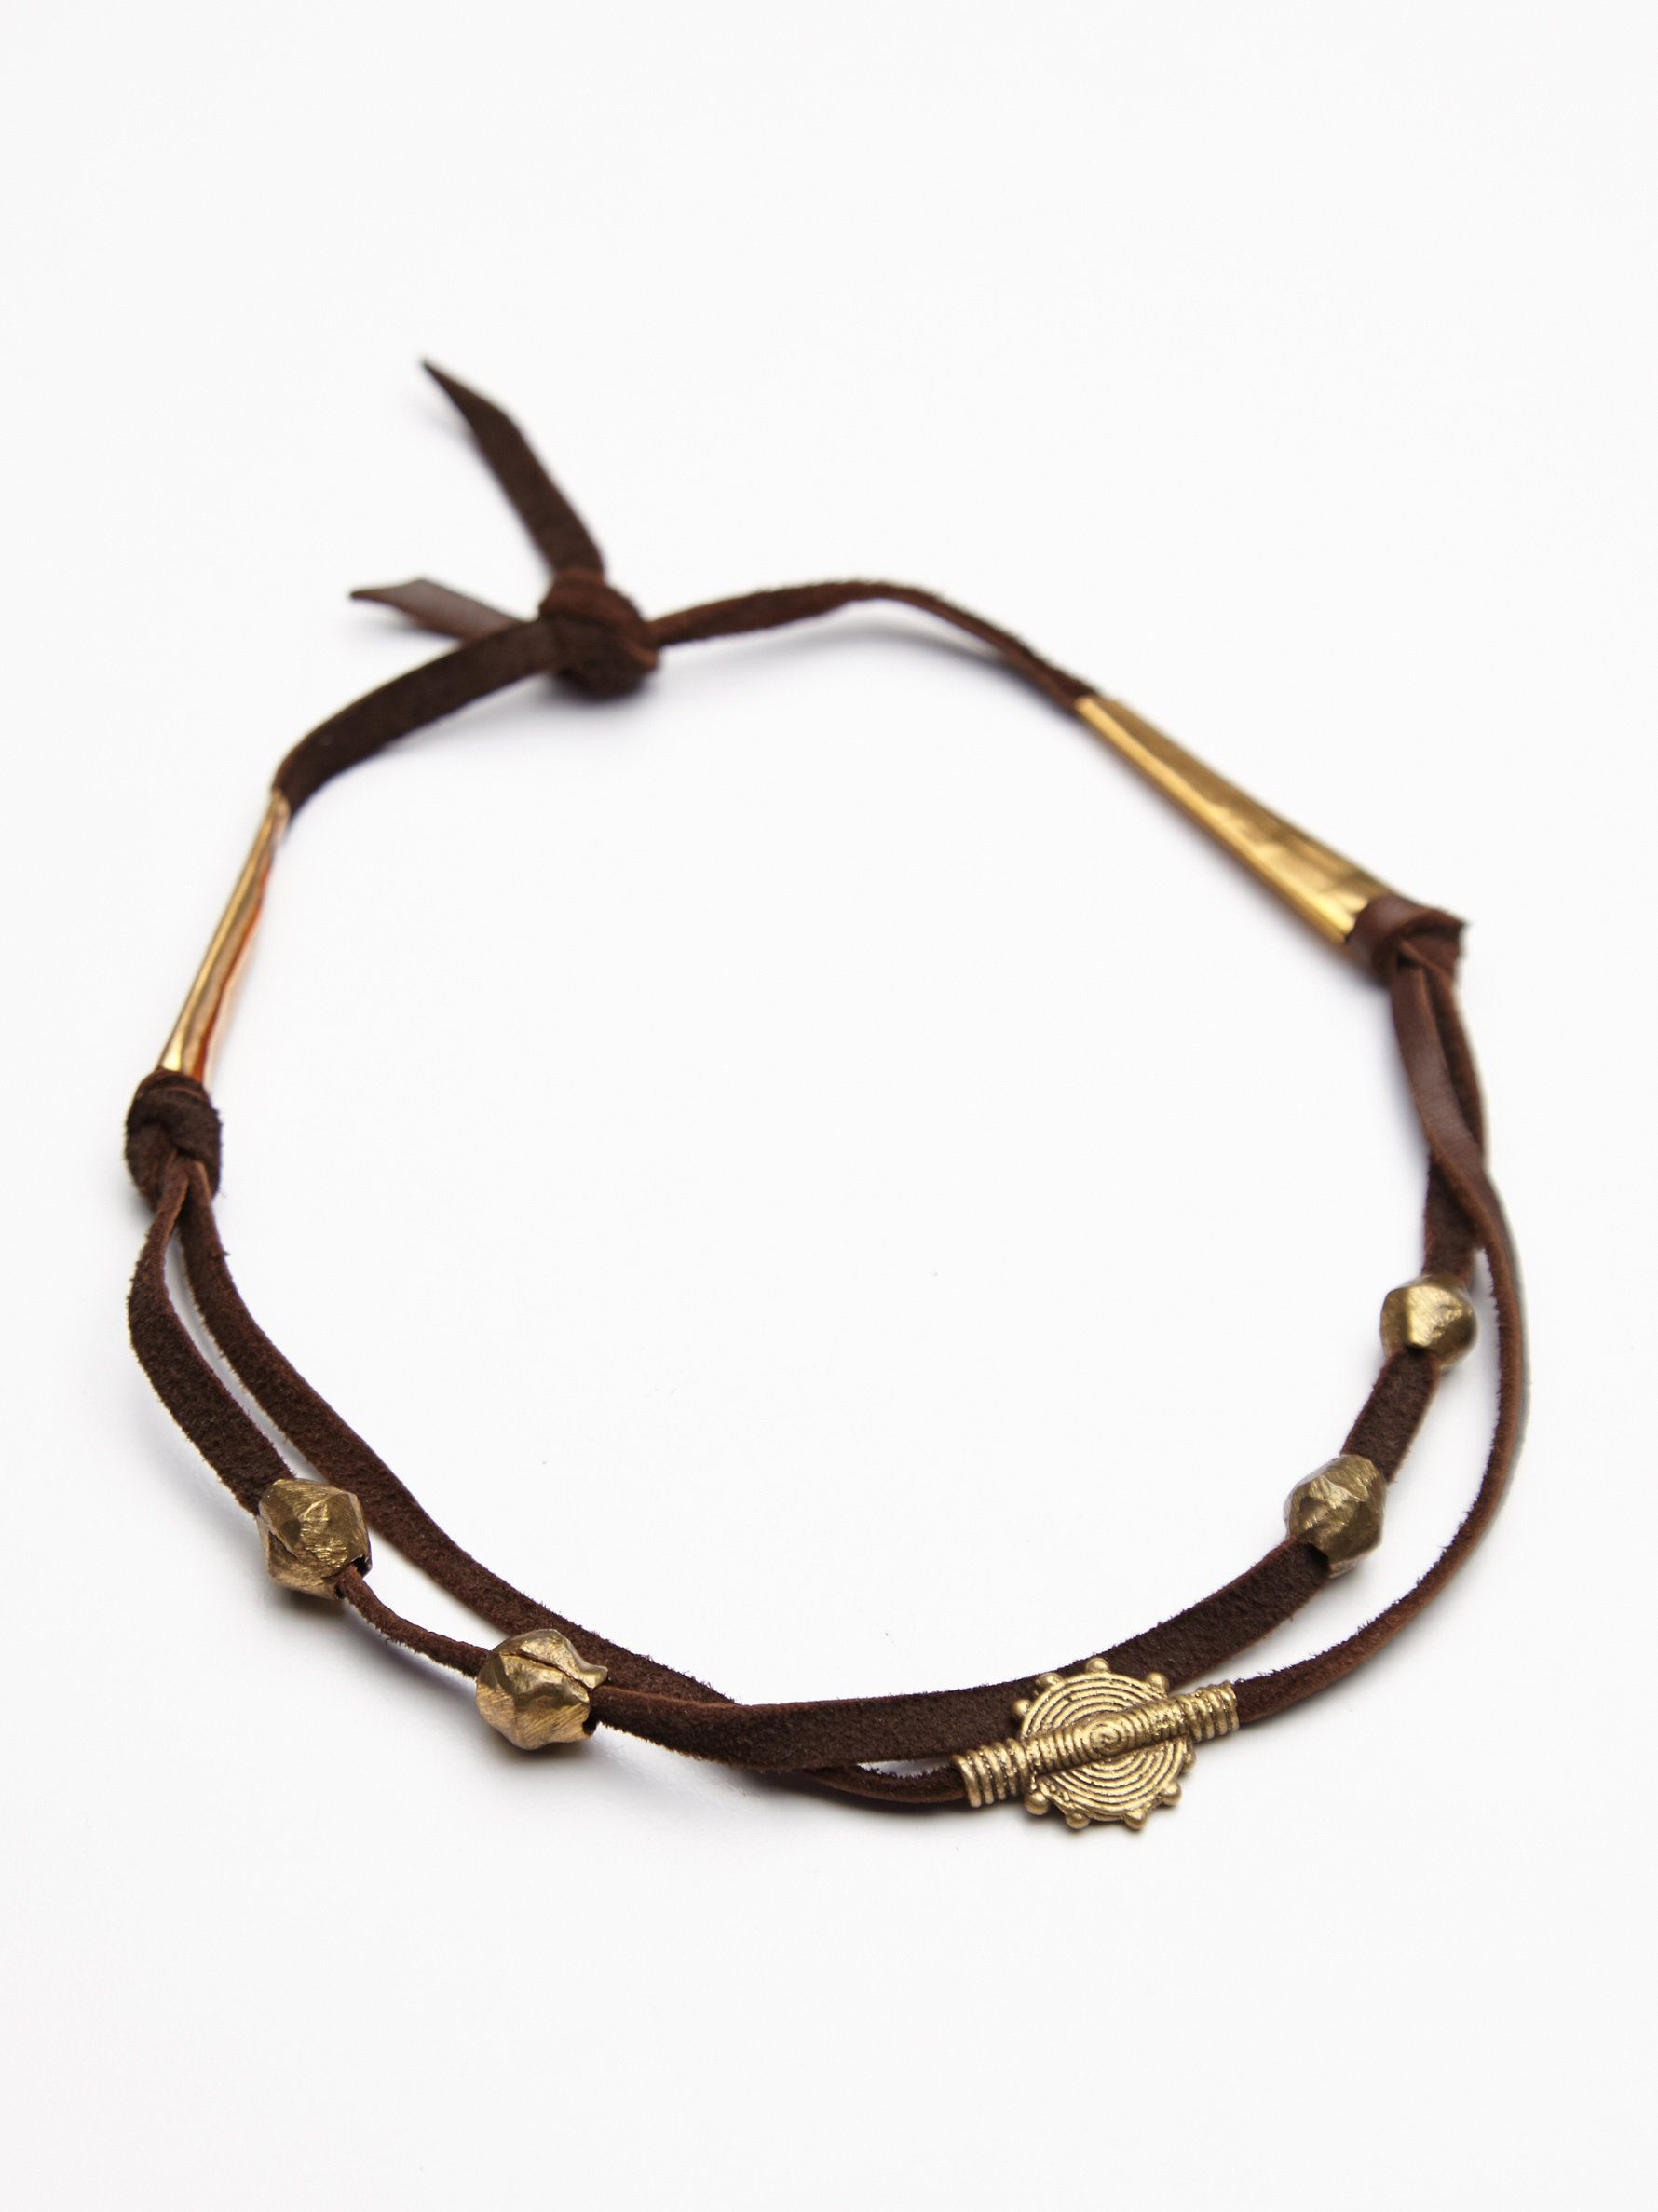 at free people Gwen Leather Choker in cognac